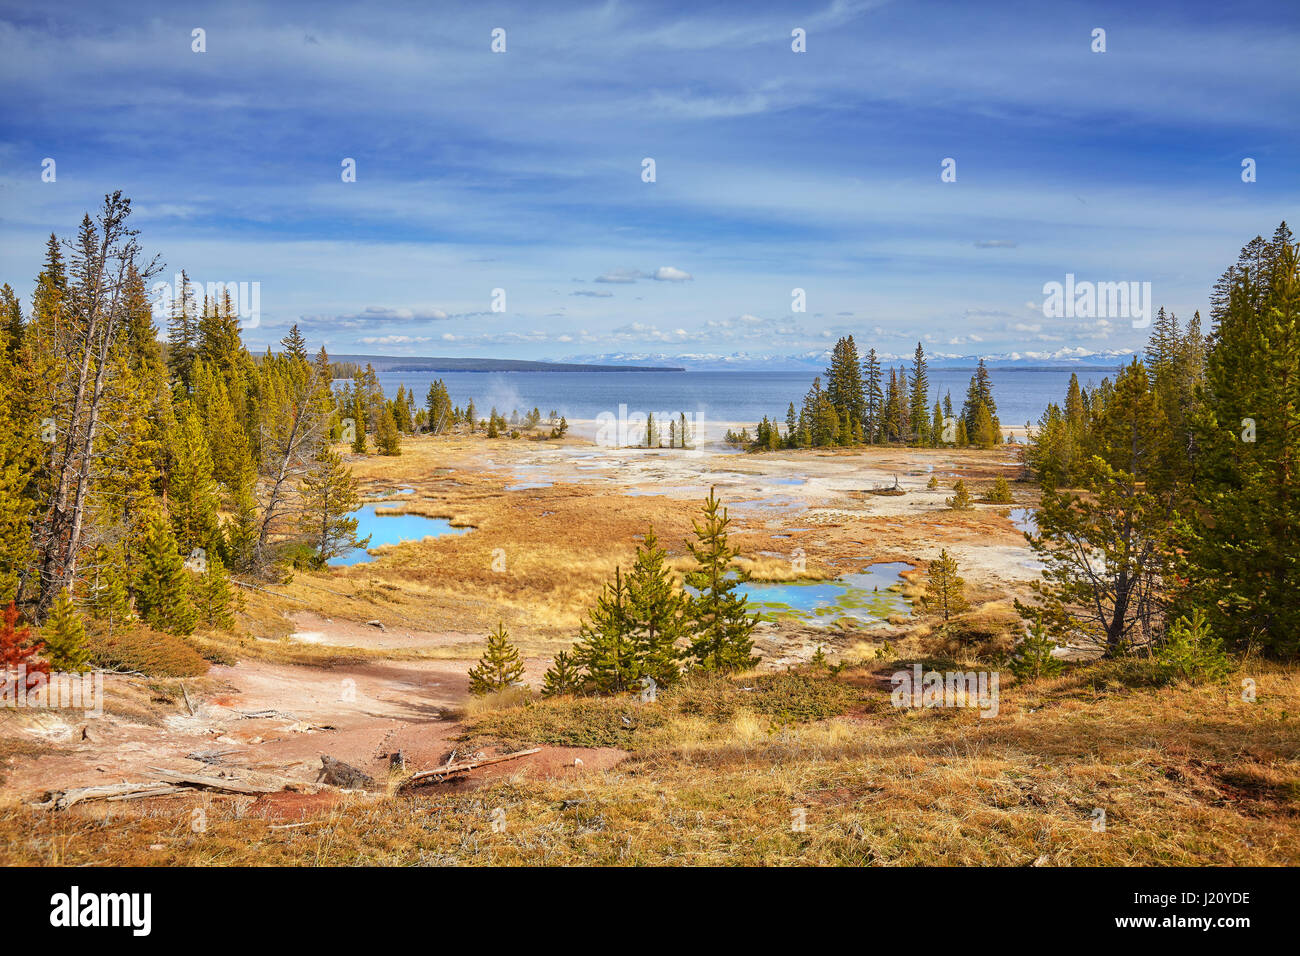 Autumn landscape with hot springs and geysers in Yellowstone National Park, Wyoming, USA. - Stock Image